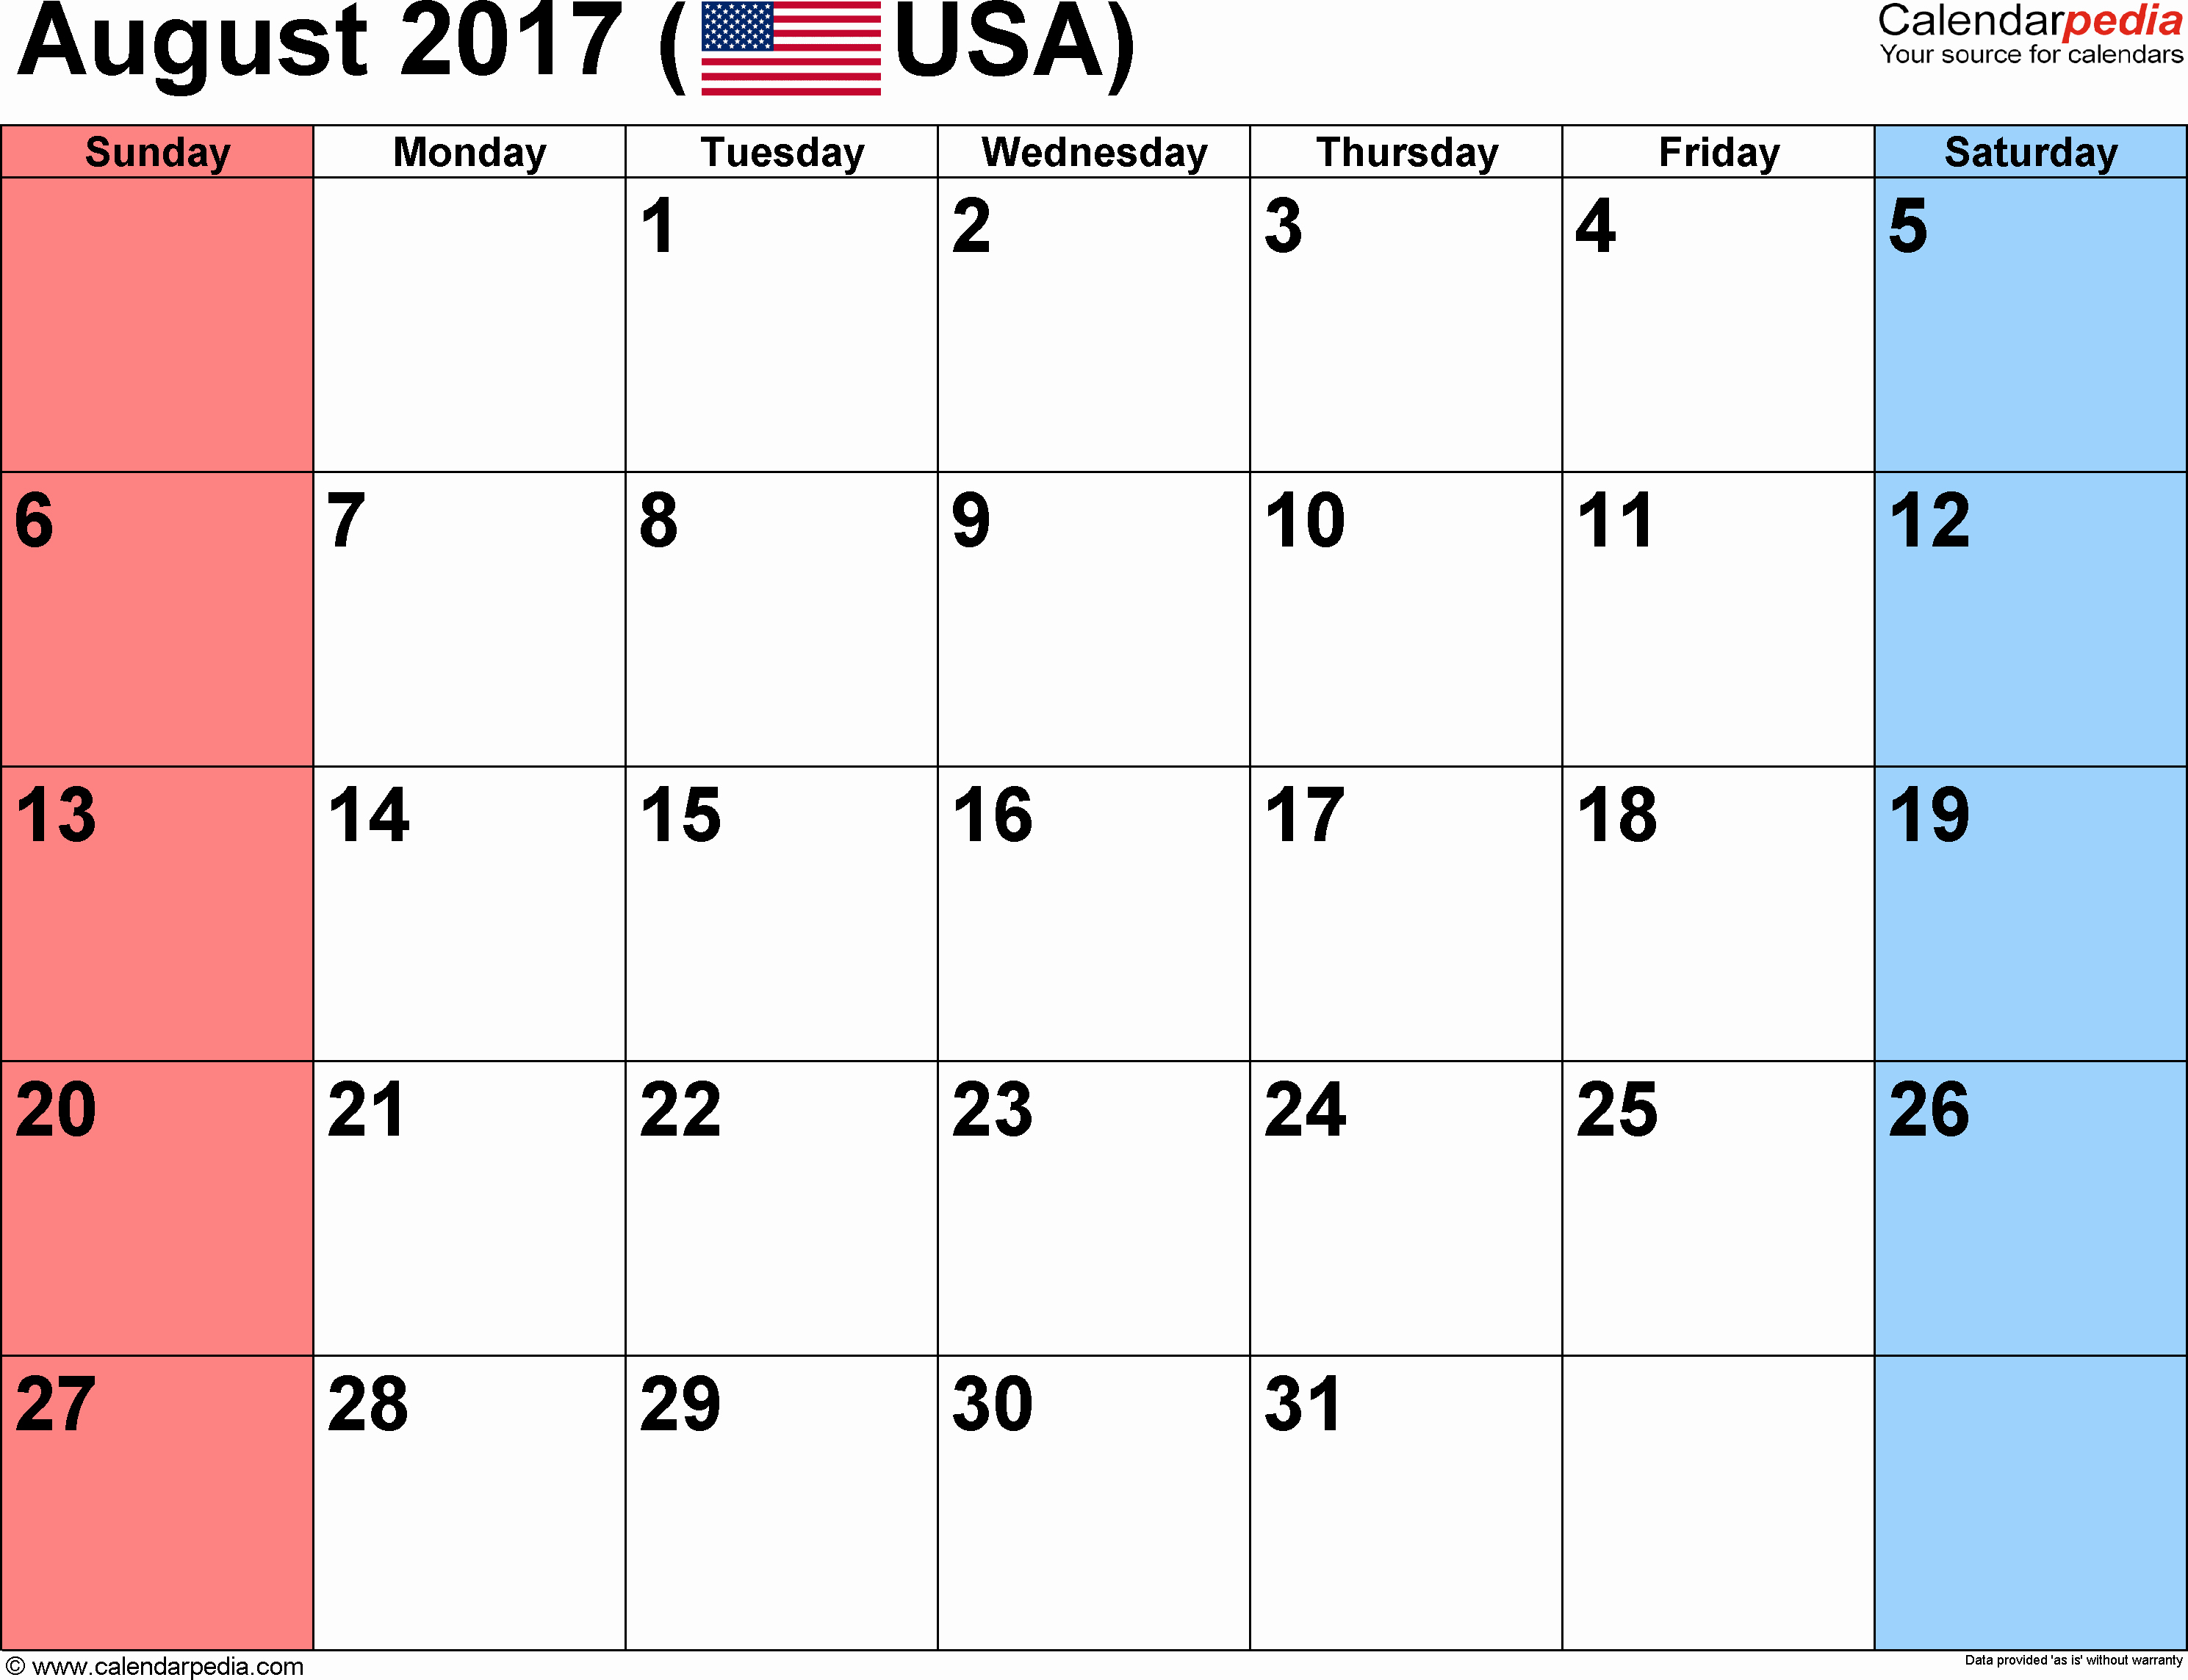 Calendar 2017 Template with Holidays Awesome August 2017 Calendar with Holidays